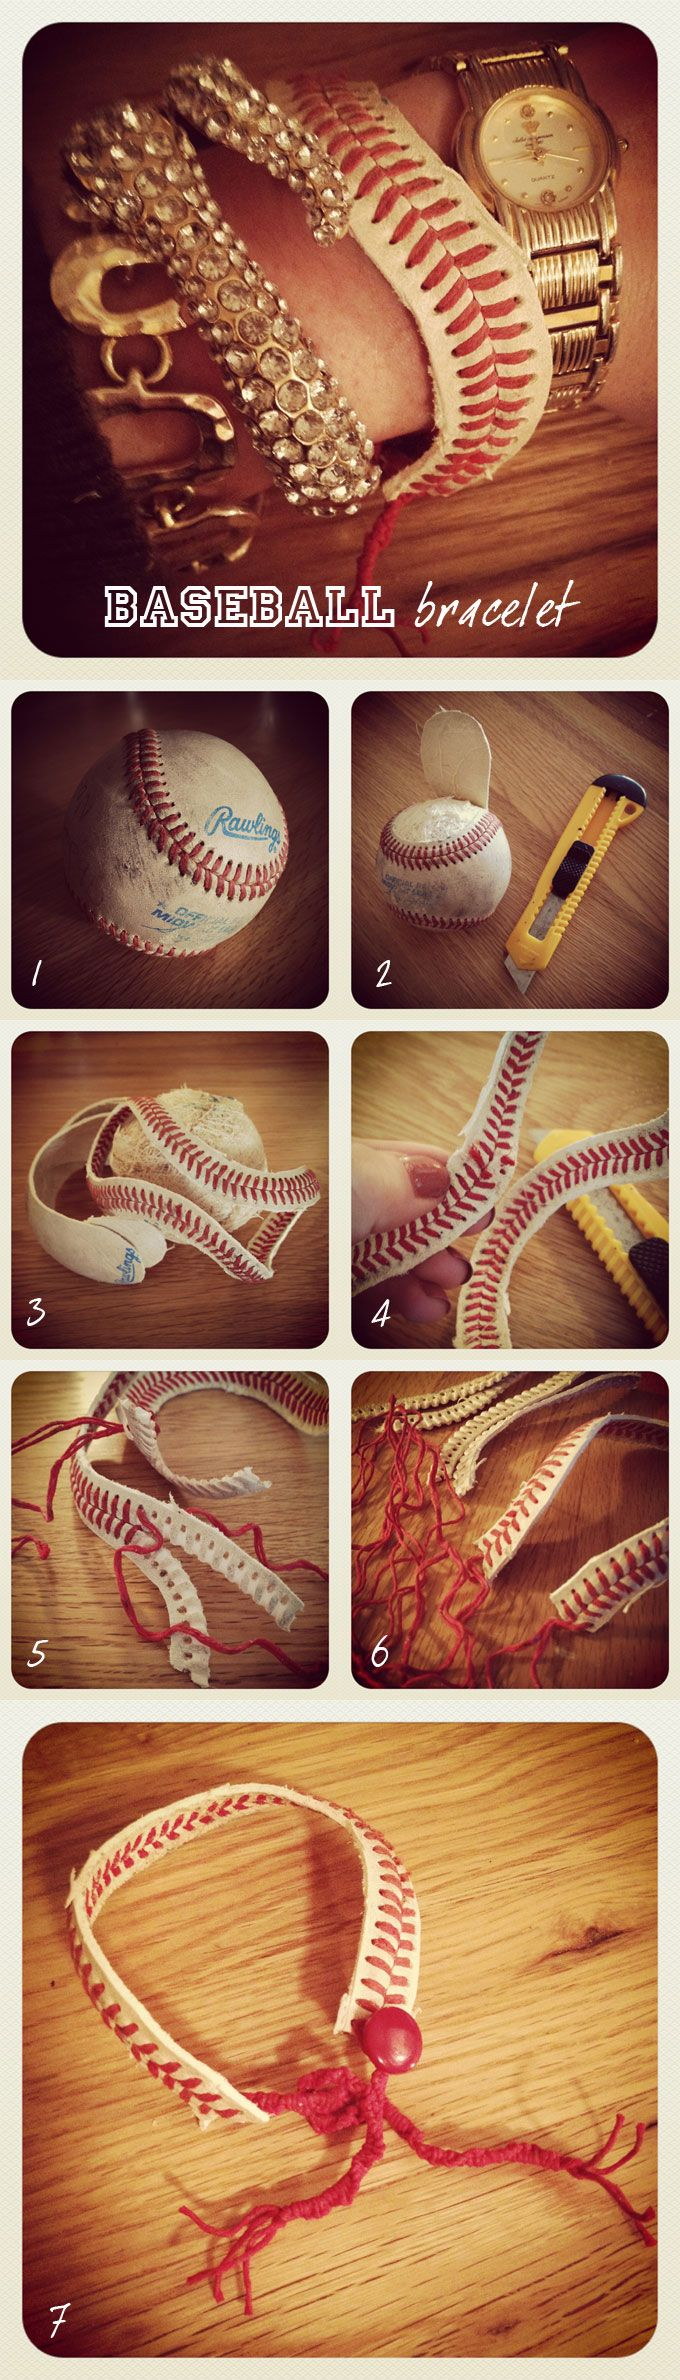 Clever idea.: Crafts Ideas, Baseball Bracelets, Diy Crafts, Crafty, Cute Ideas, Baseb Bracelets, Softball Bracelets, Diy Baseb, Baseb Seasons